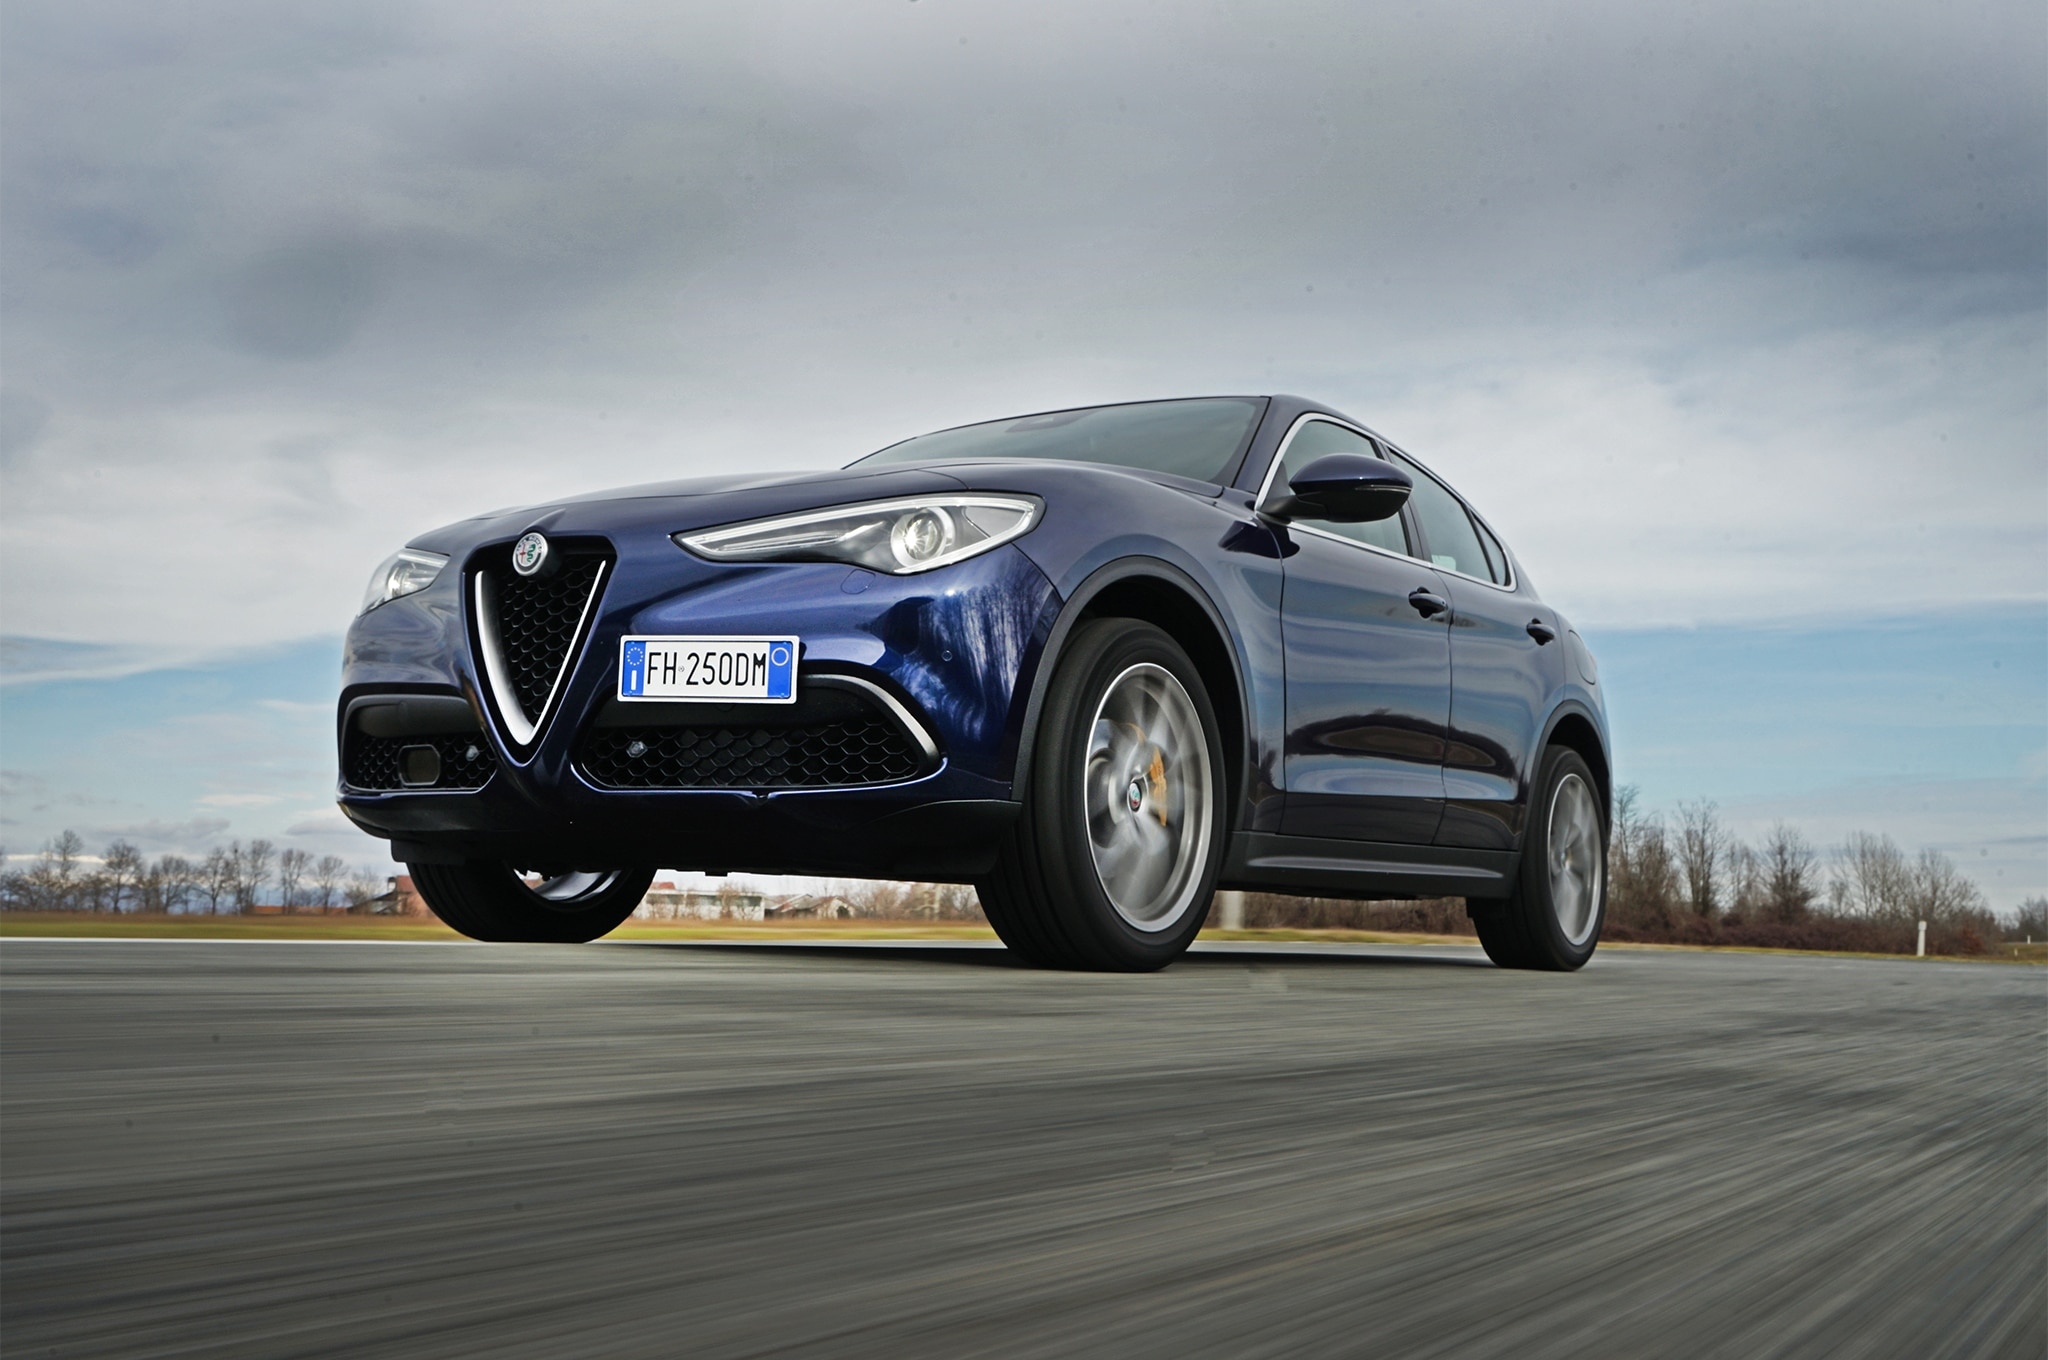 Own A 2018 Alfa Romeo Stelvio For $42,990